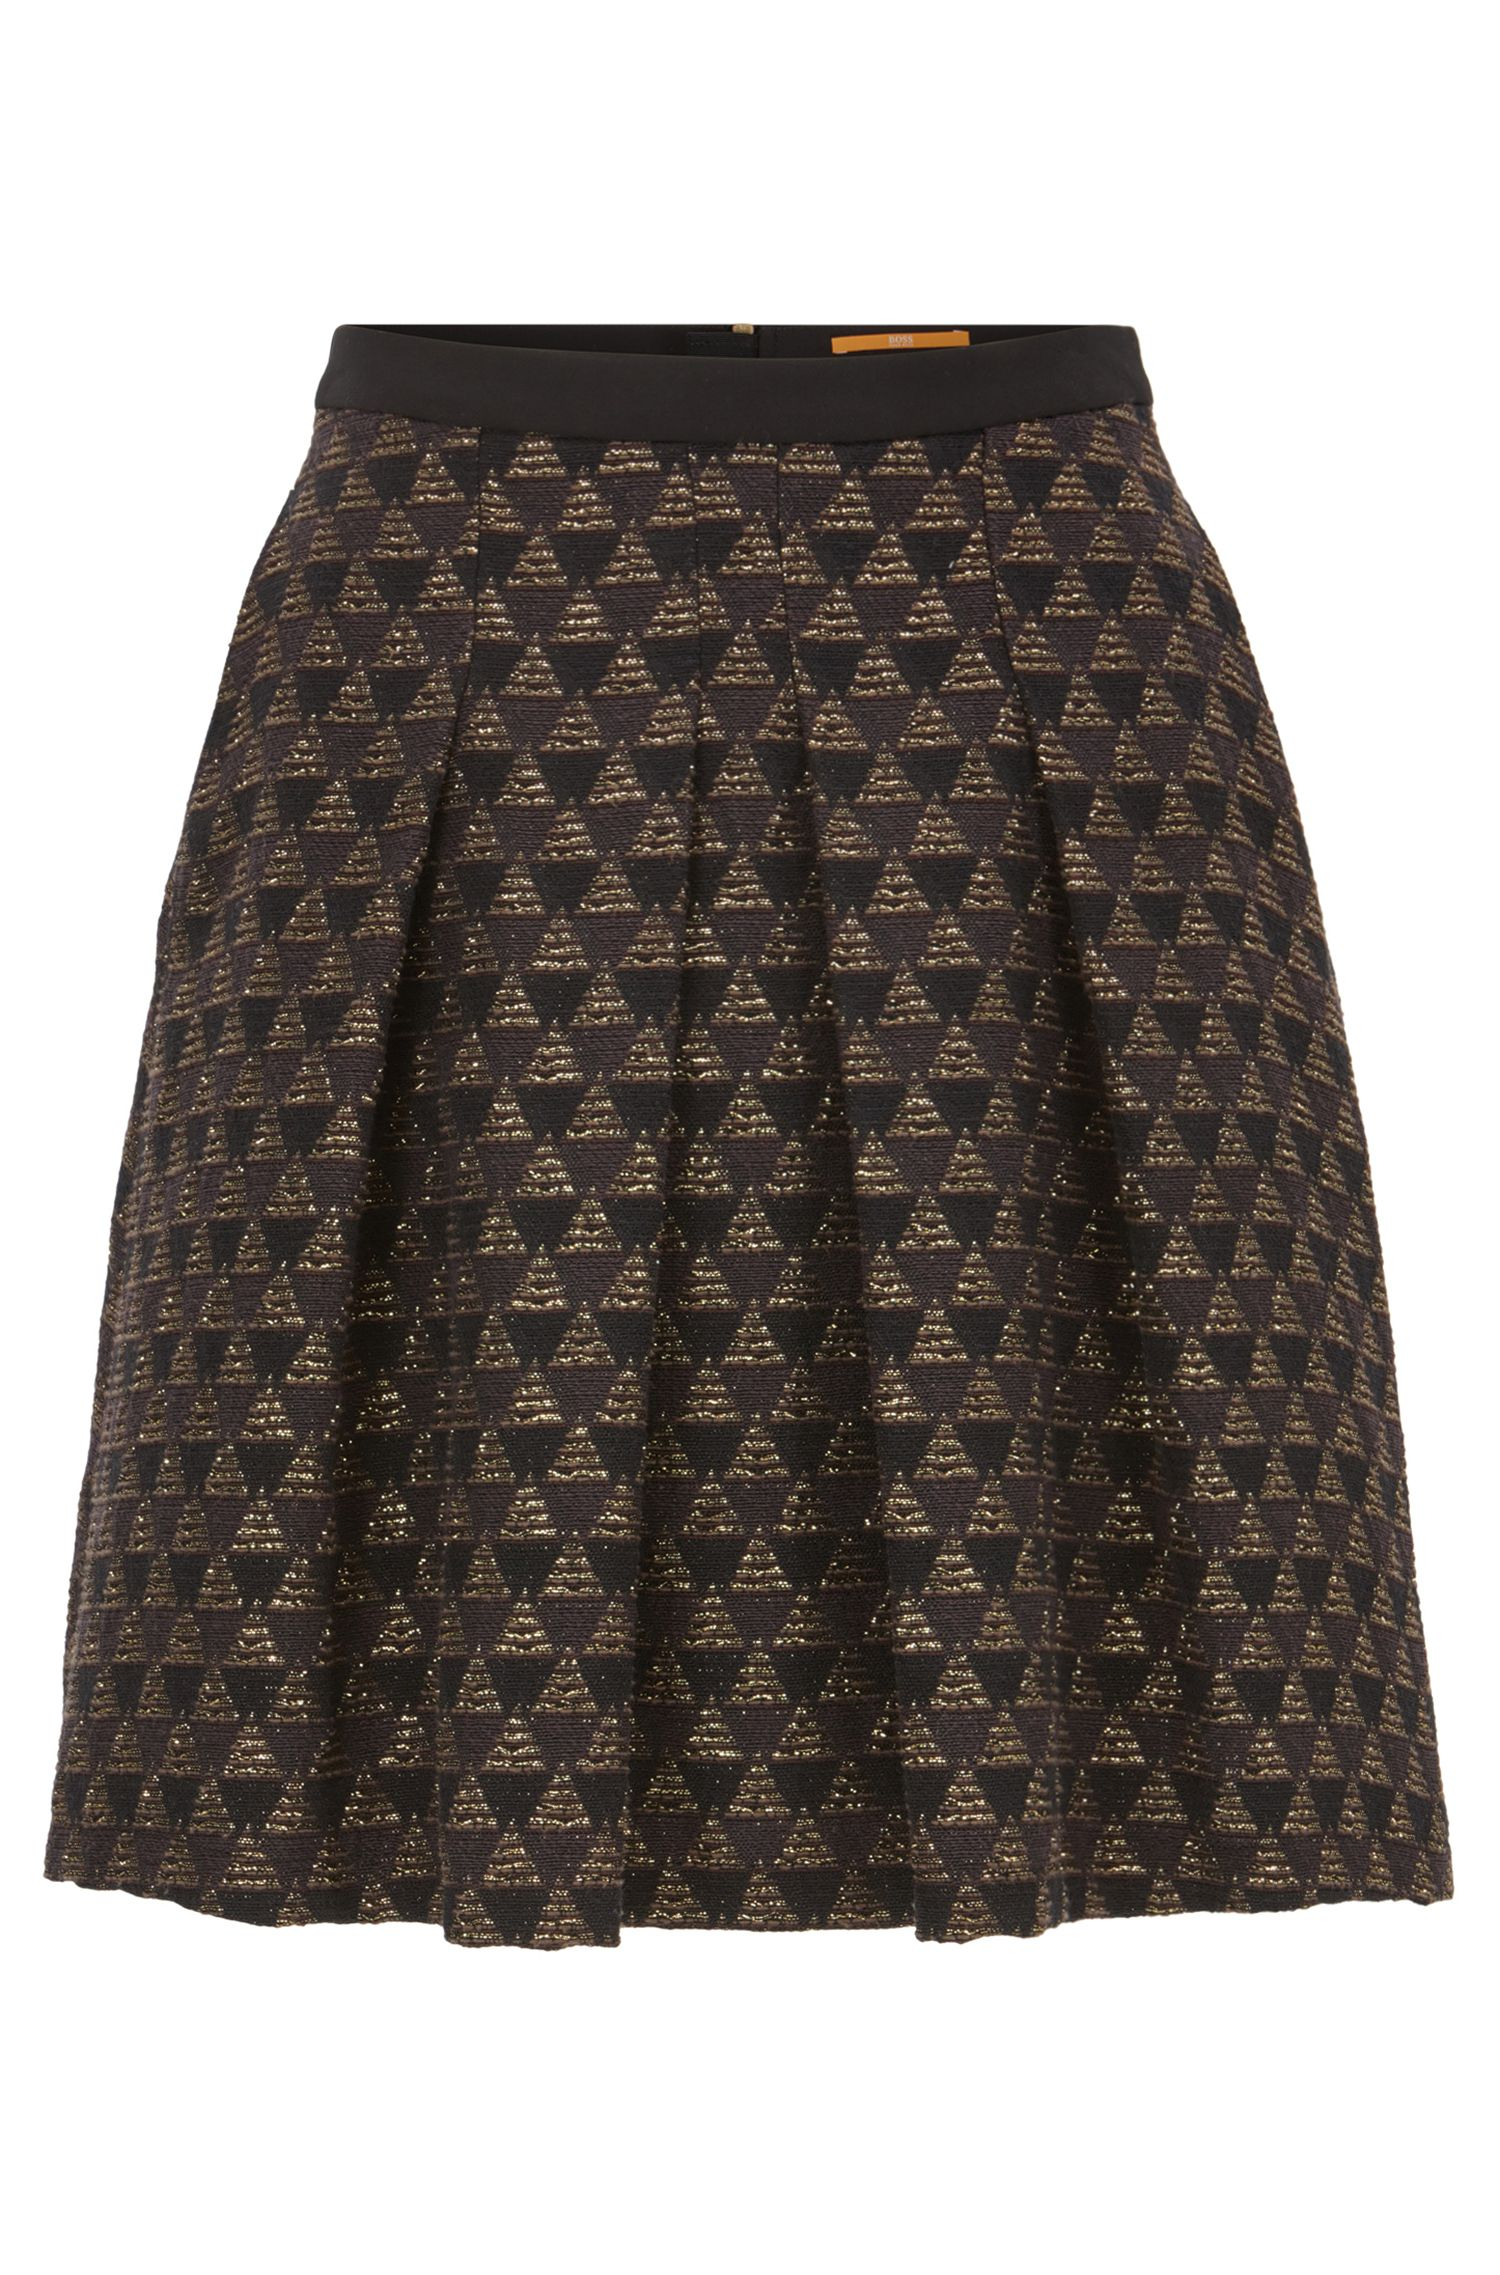 A-line skater skirt in a cotton-blend jacquard